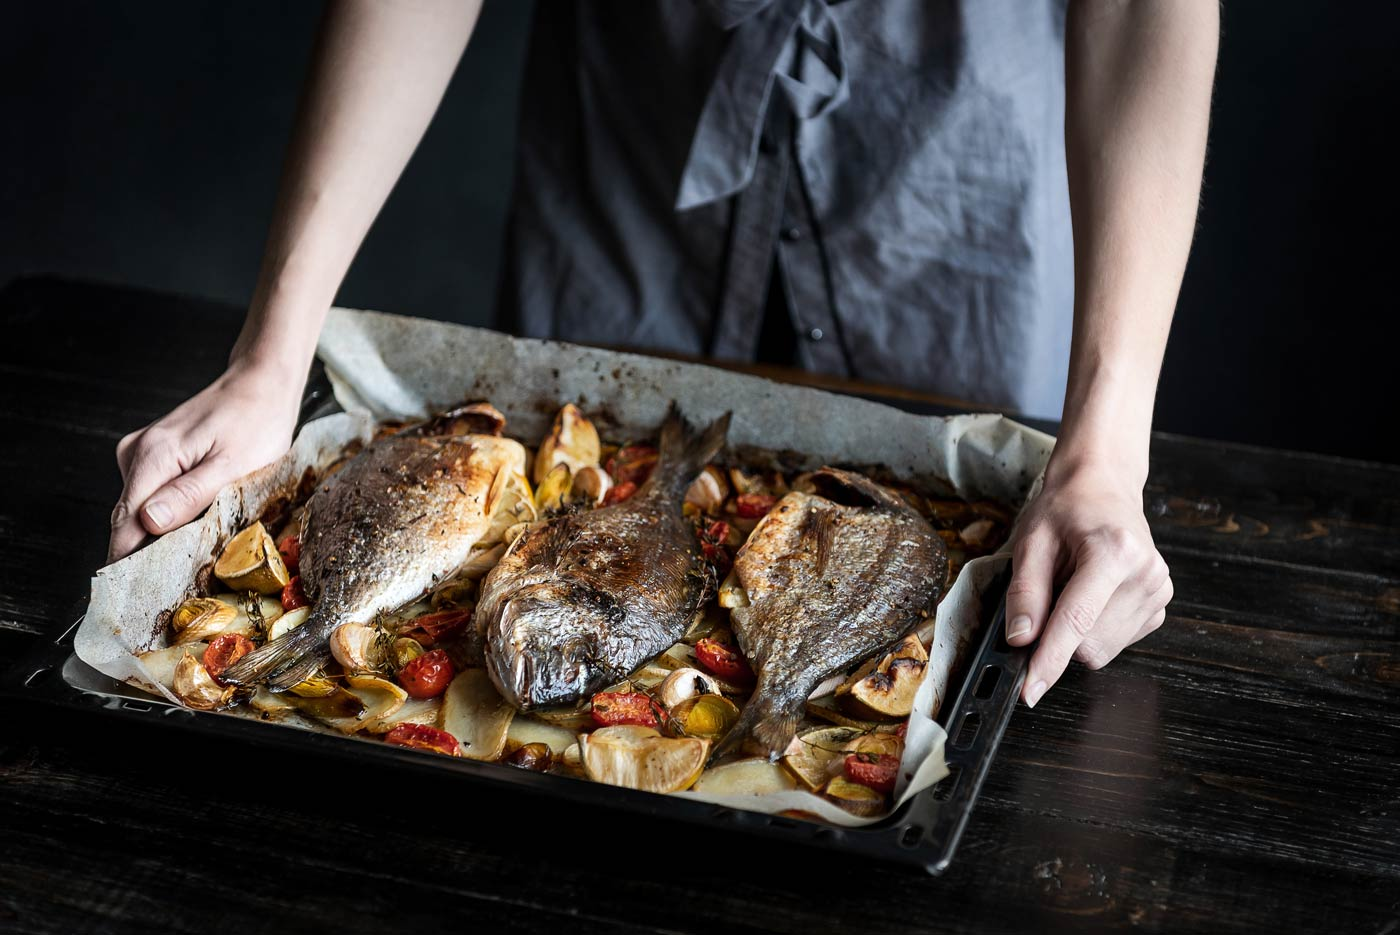 Baked fish being placed on table